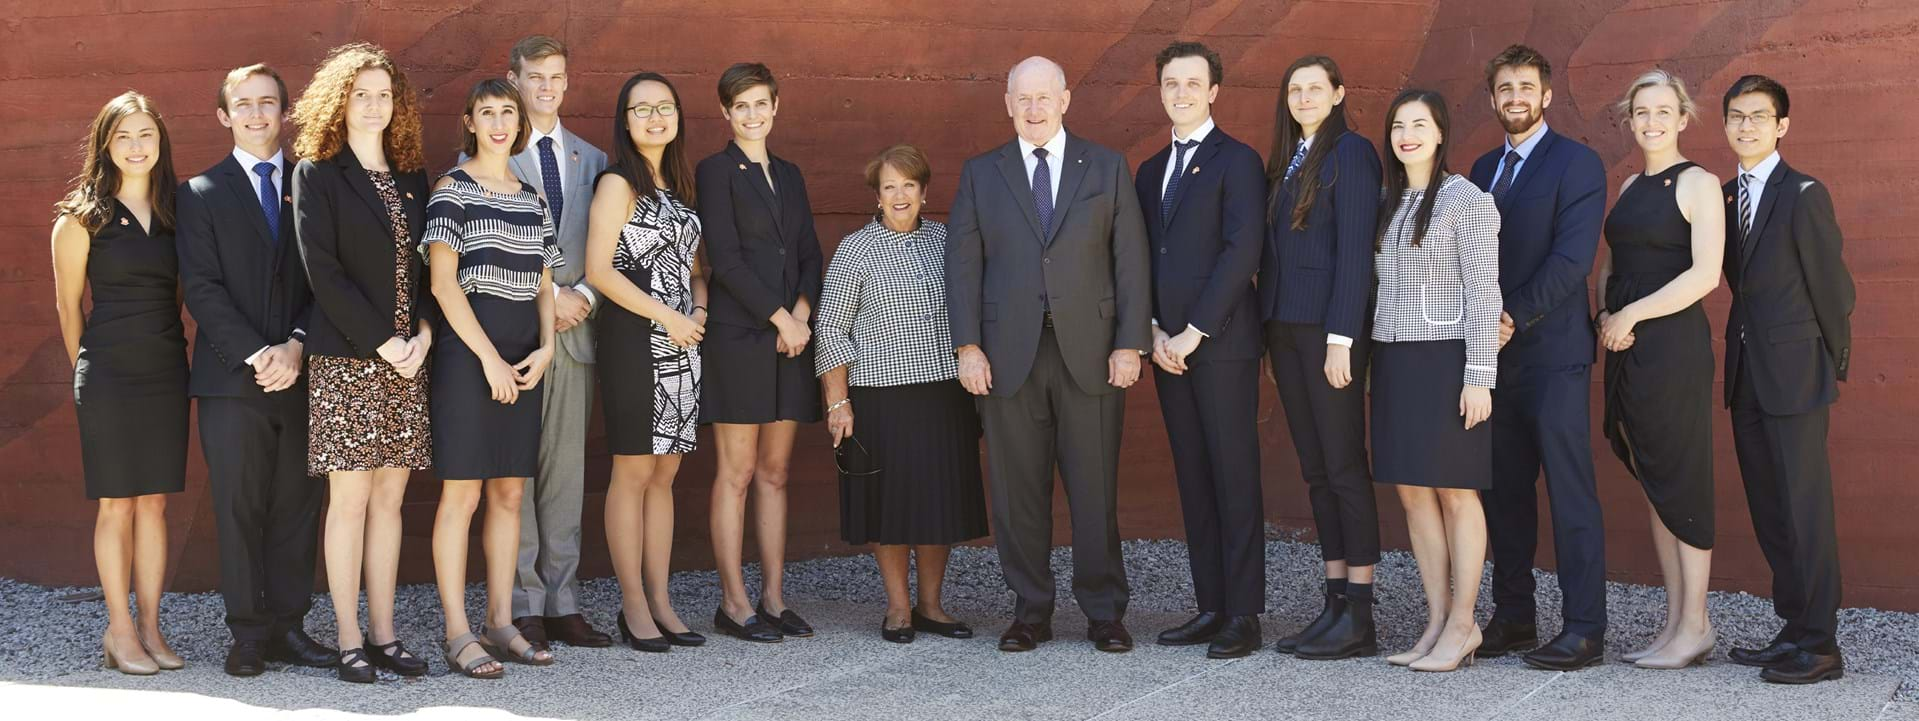 Presentation Ceremony of the 2019 John Monash Scholars and His Excellency General the Honourable Sir Peter Cosgrove AK MC (Retd) Governor-General of the  Commonwealth of Australia and Her Excellency Lady Cosgrove